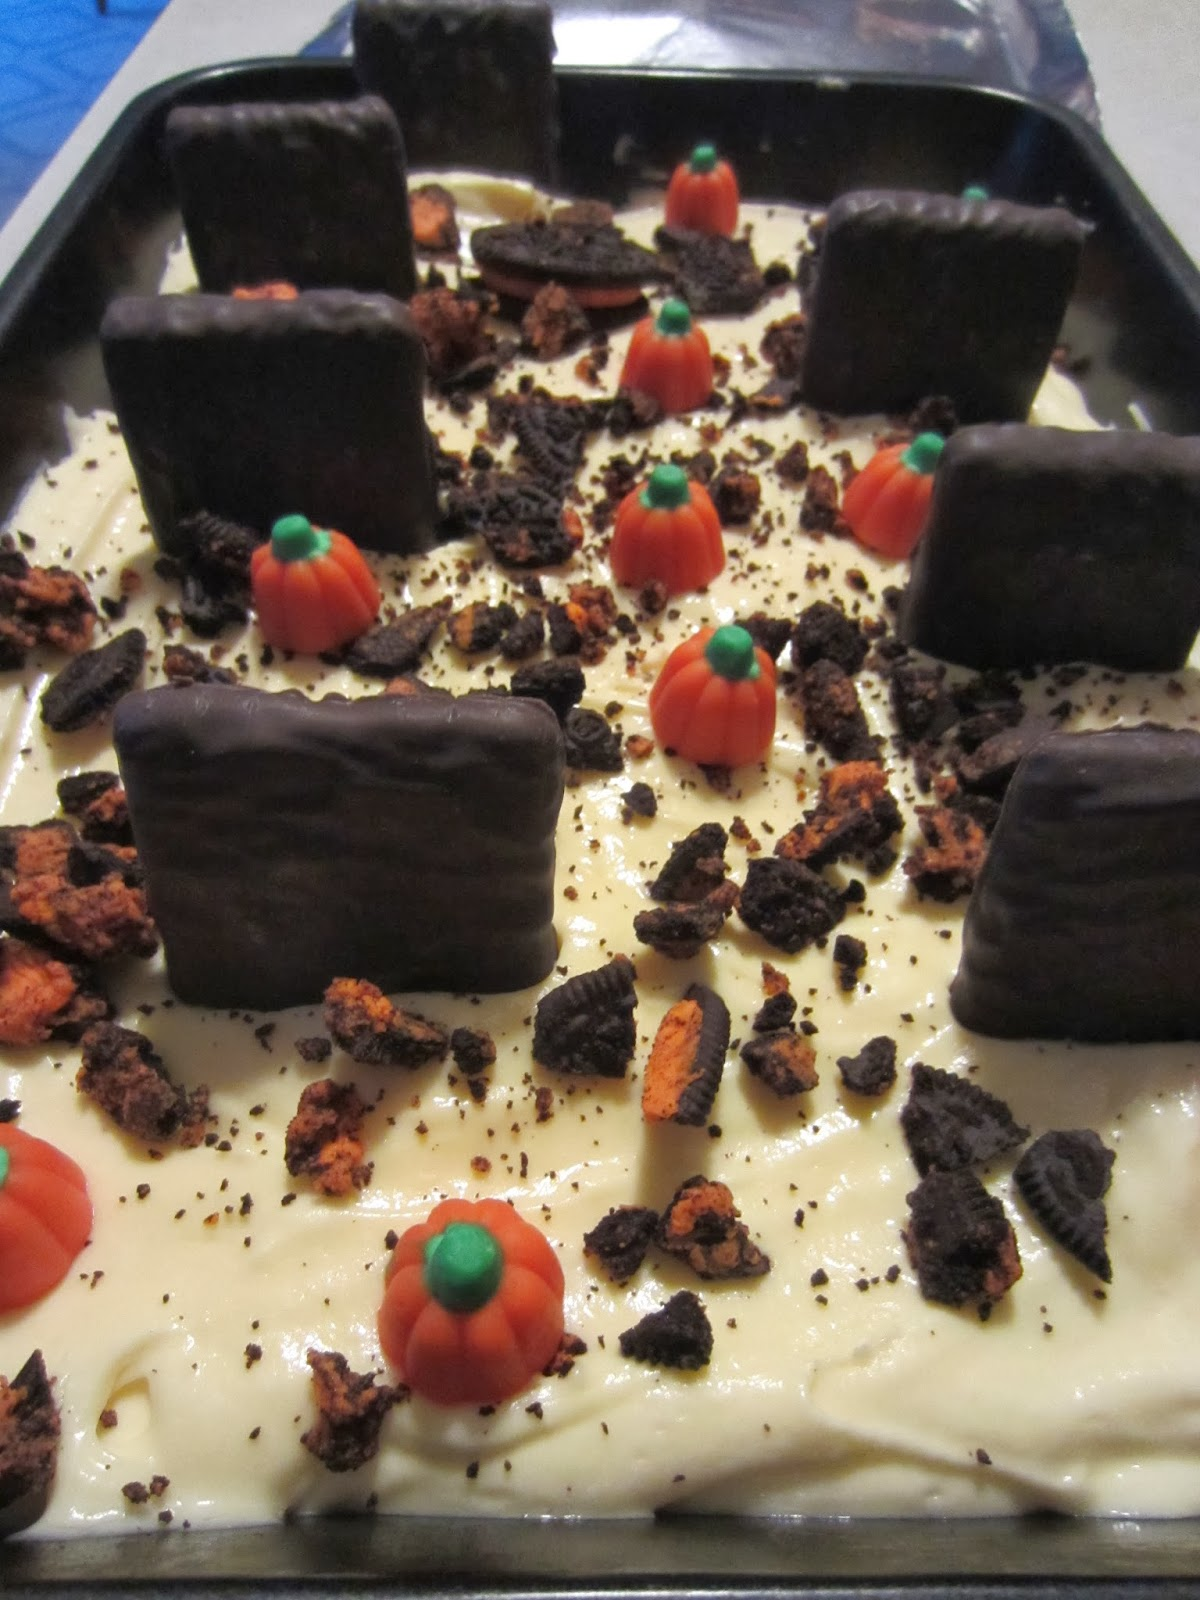 graveyard dirt cake - 28 images - mini graveyard dirt cake ...